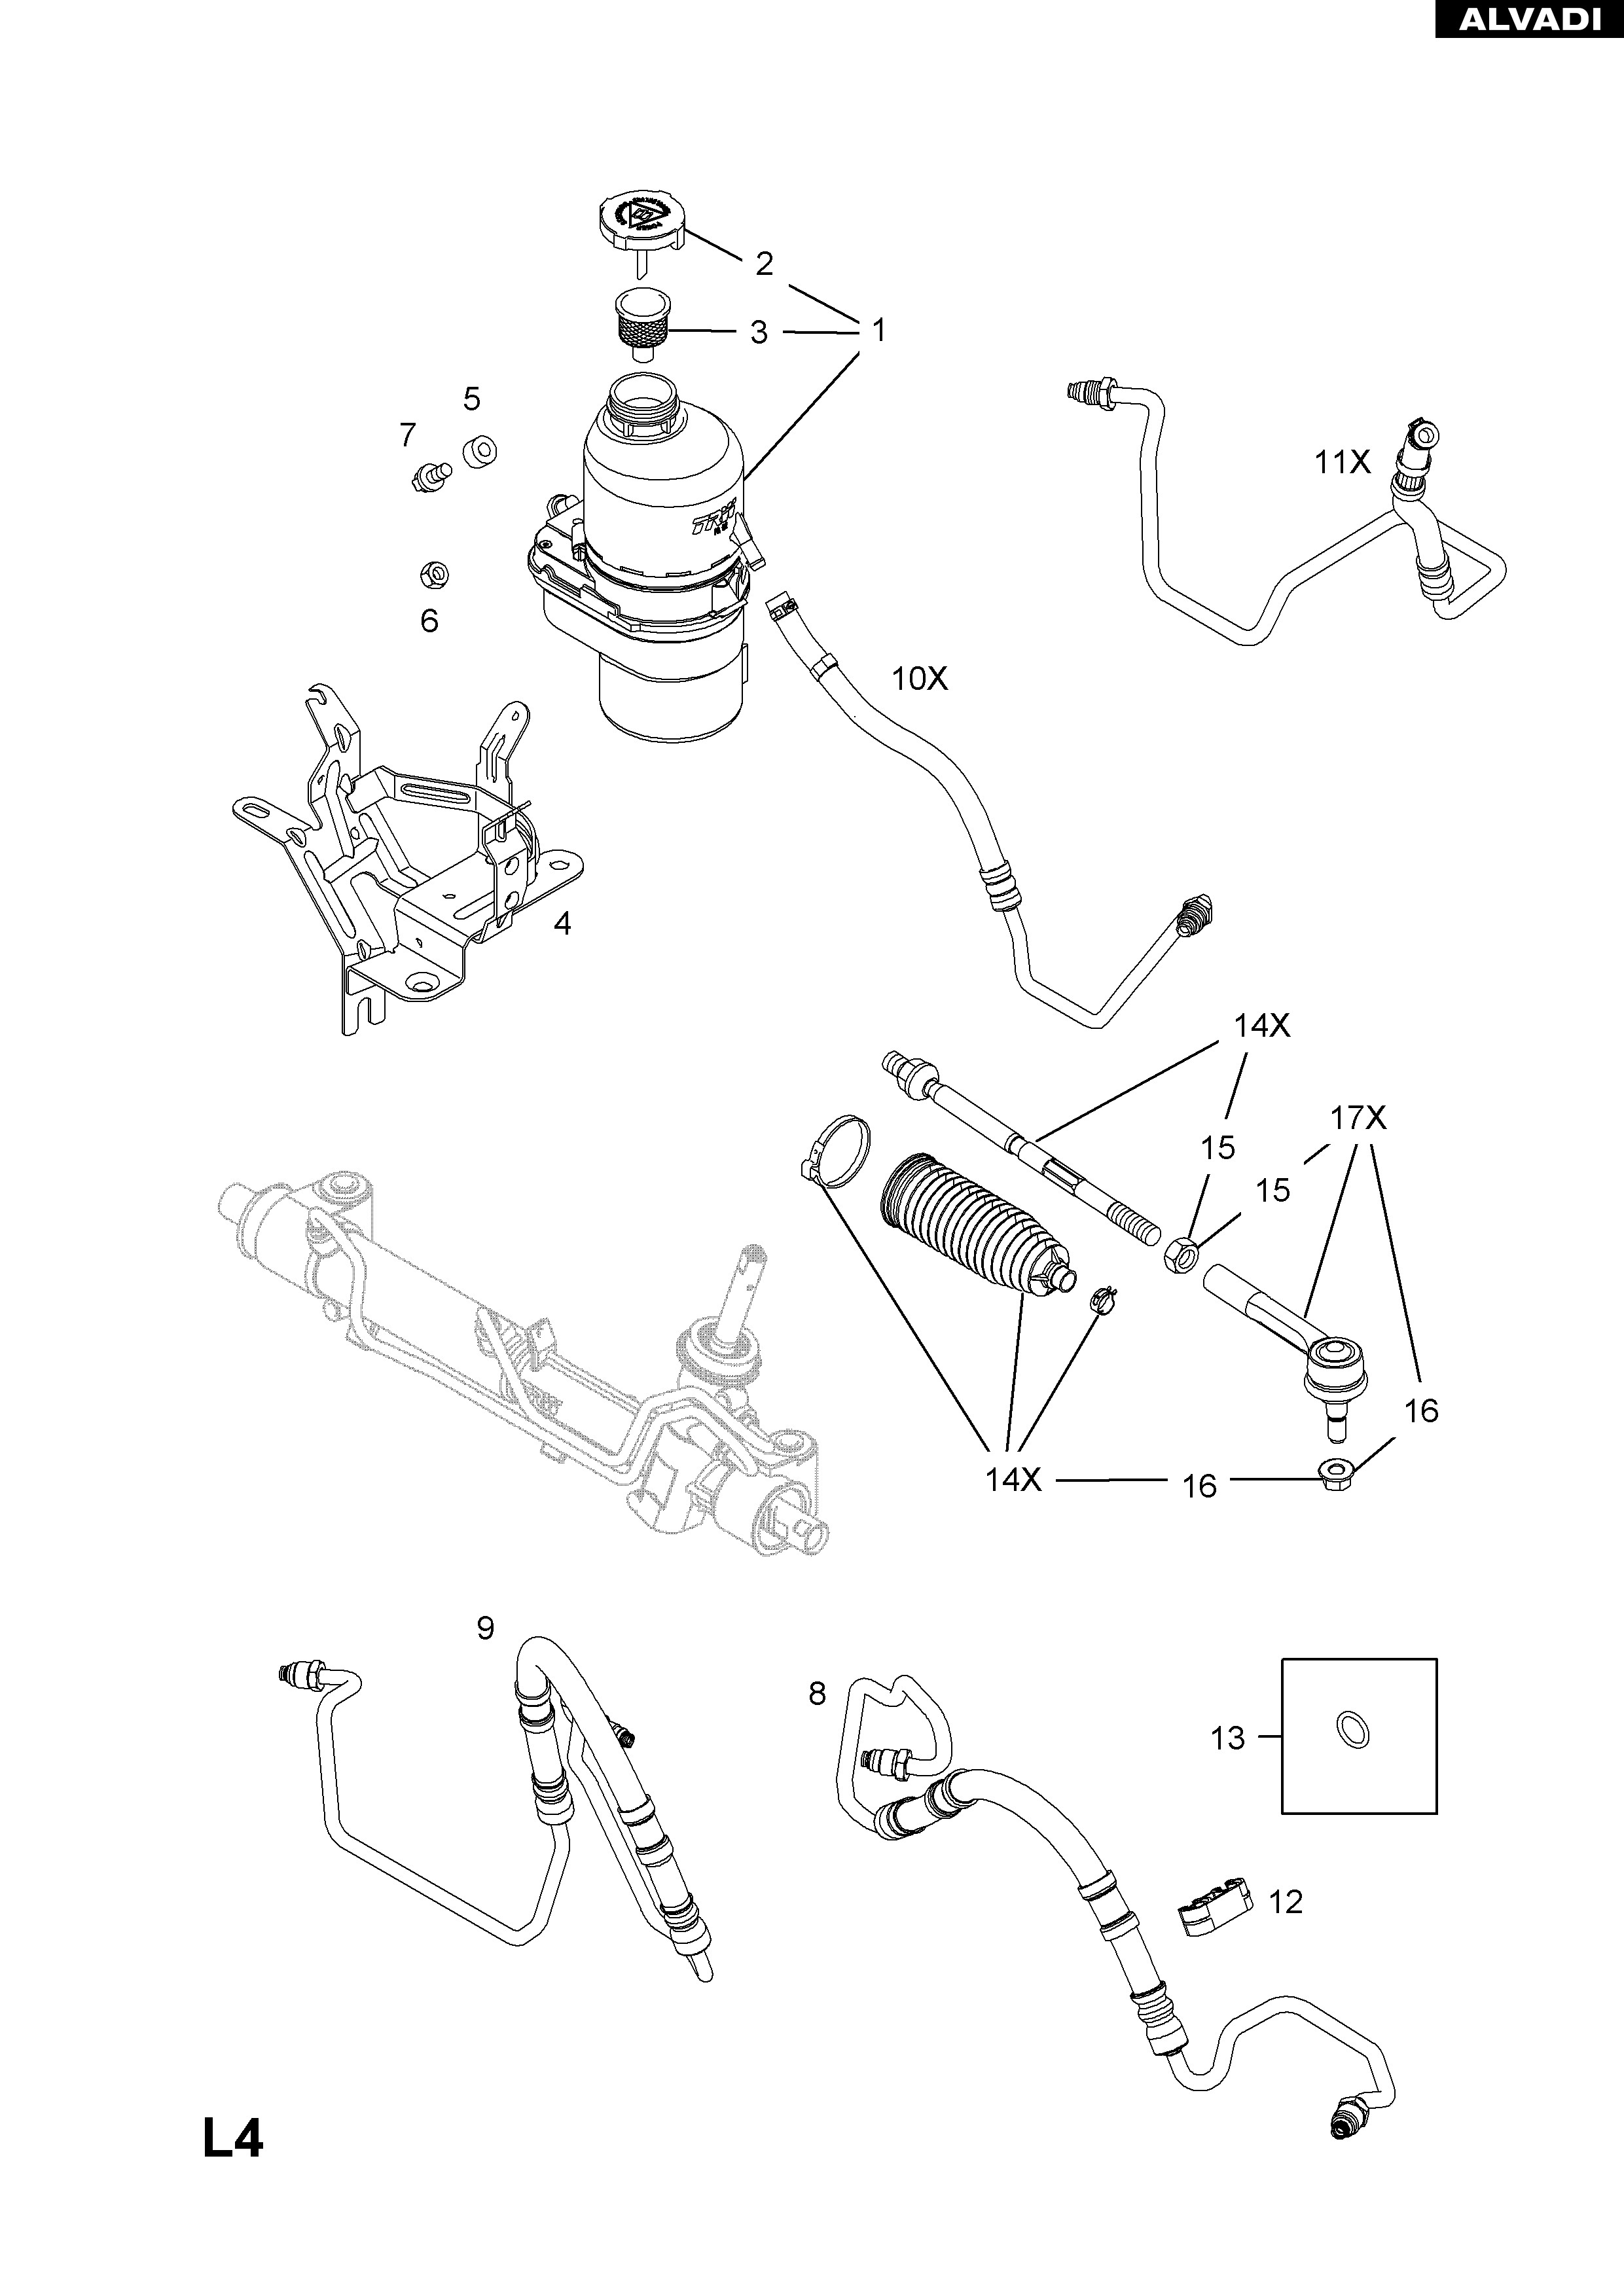 Power Steering Pump Parts Diagram Cub Cadet Parts Diagrams